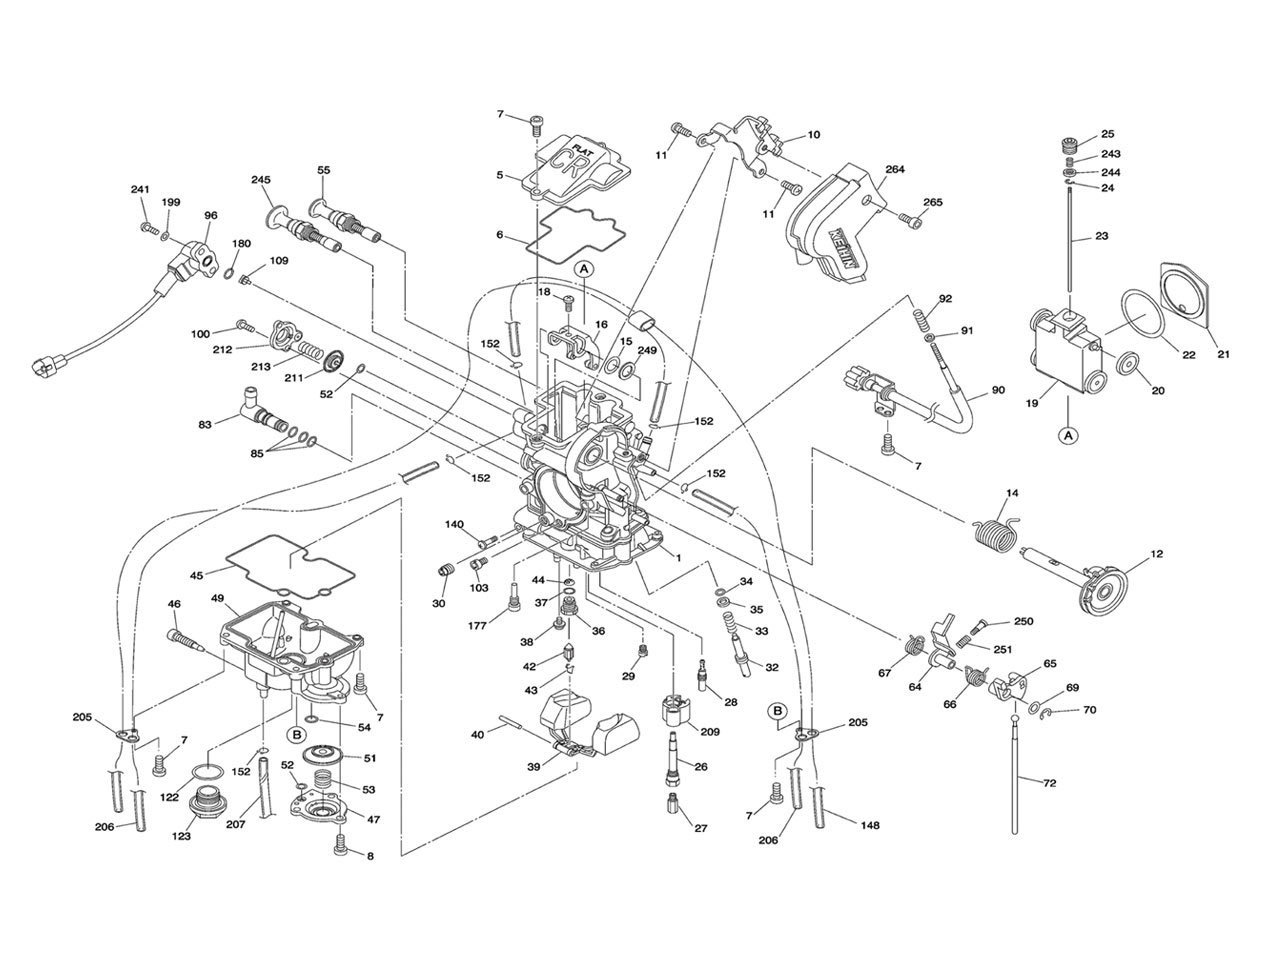 Keihin FCR MX carburetor - parts diagram on cadillac parts schematic, freightliner parts schematic, kubota parts schematic, caterpillar parts schematic, bmw parts schematic, stihl parts schematic, toyota parts schematic, kawasaki parts schematic, car parts schematic, hilti parts schematic, volvo parts schematic, porsche parts schematic, camaro parts schematic, atv parts schematic, gm parts schematic, ford parts schematic, john deere parts schematic, vw parts schematic, harley parts schematic, husqvarna parts schematic,